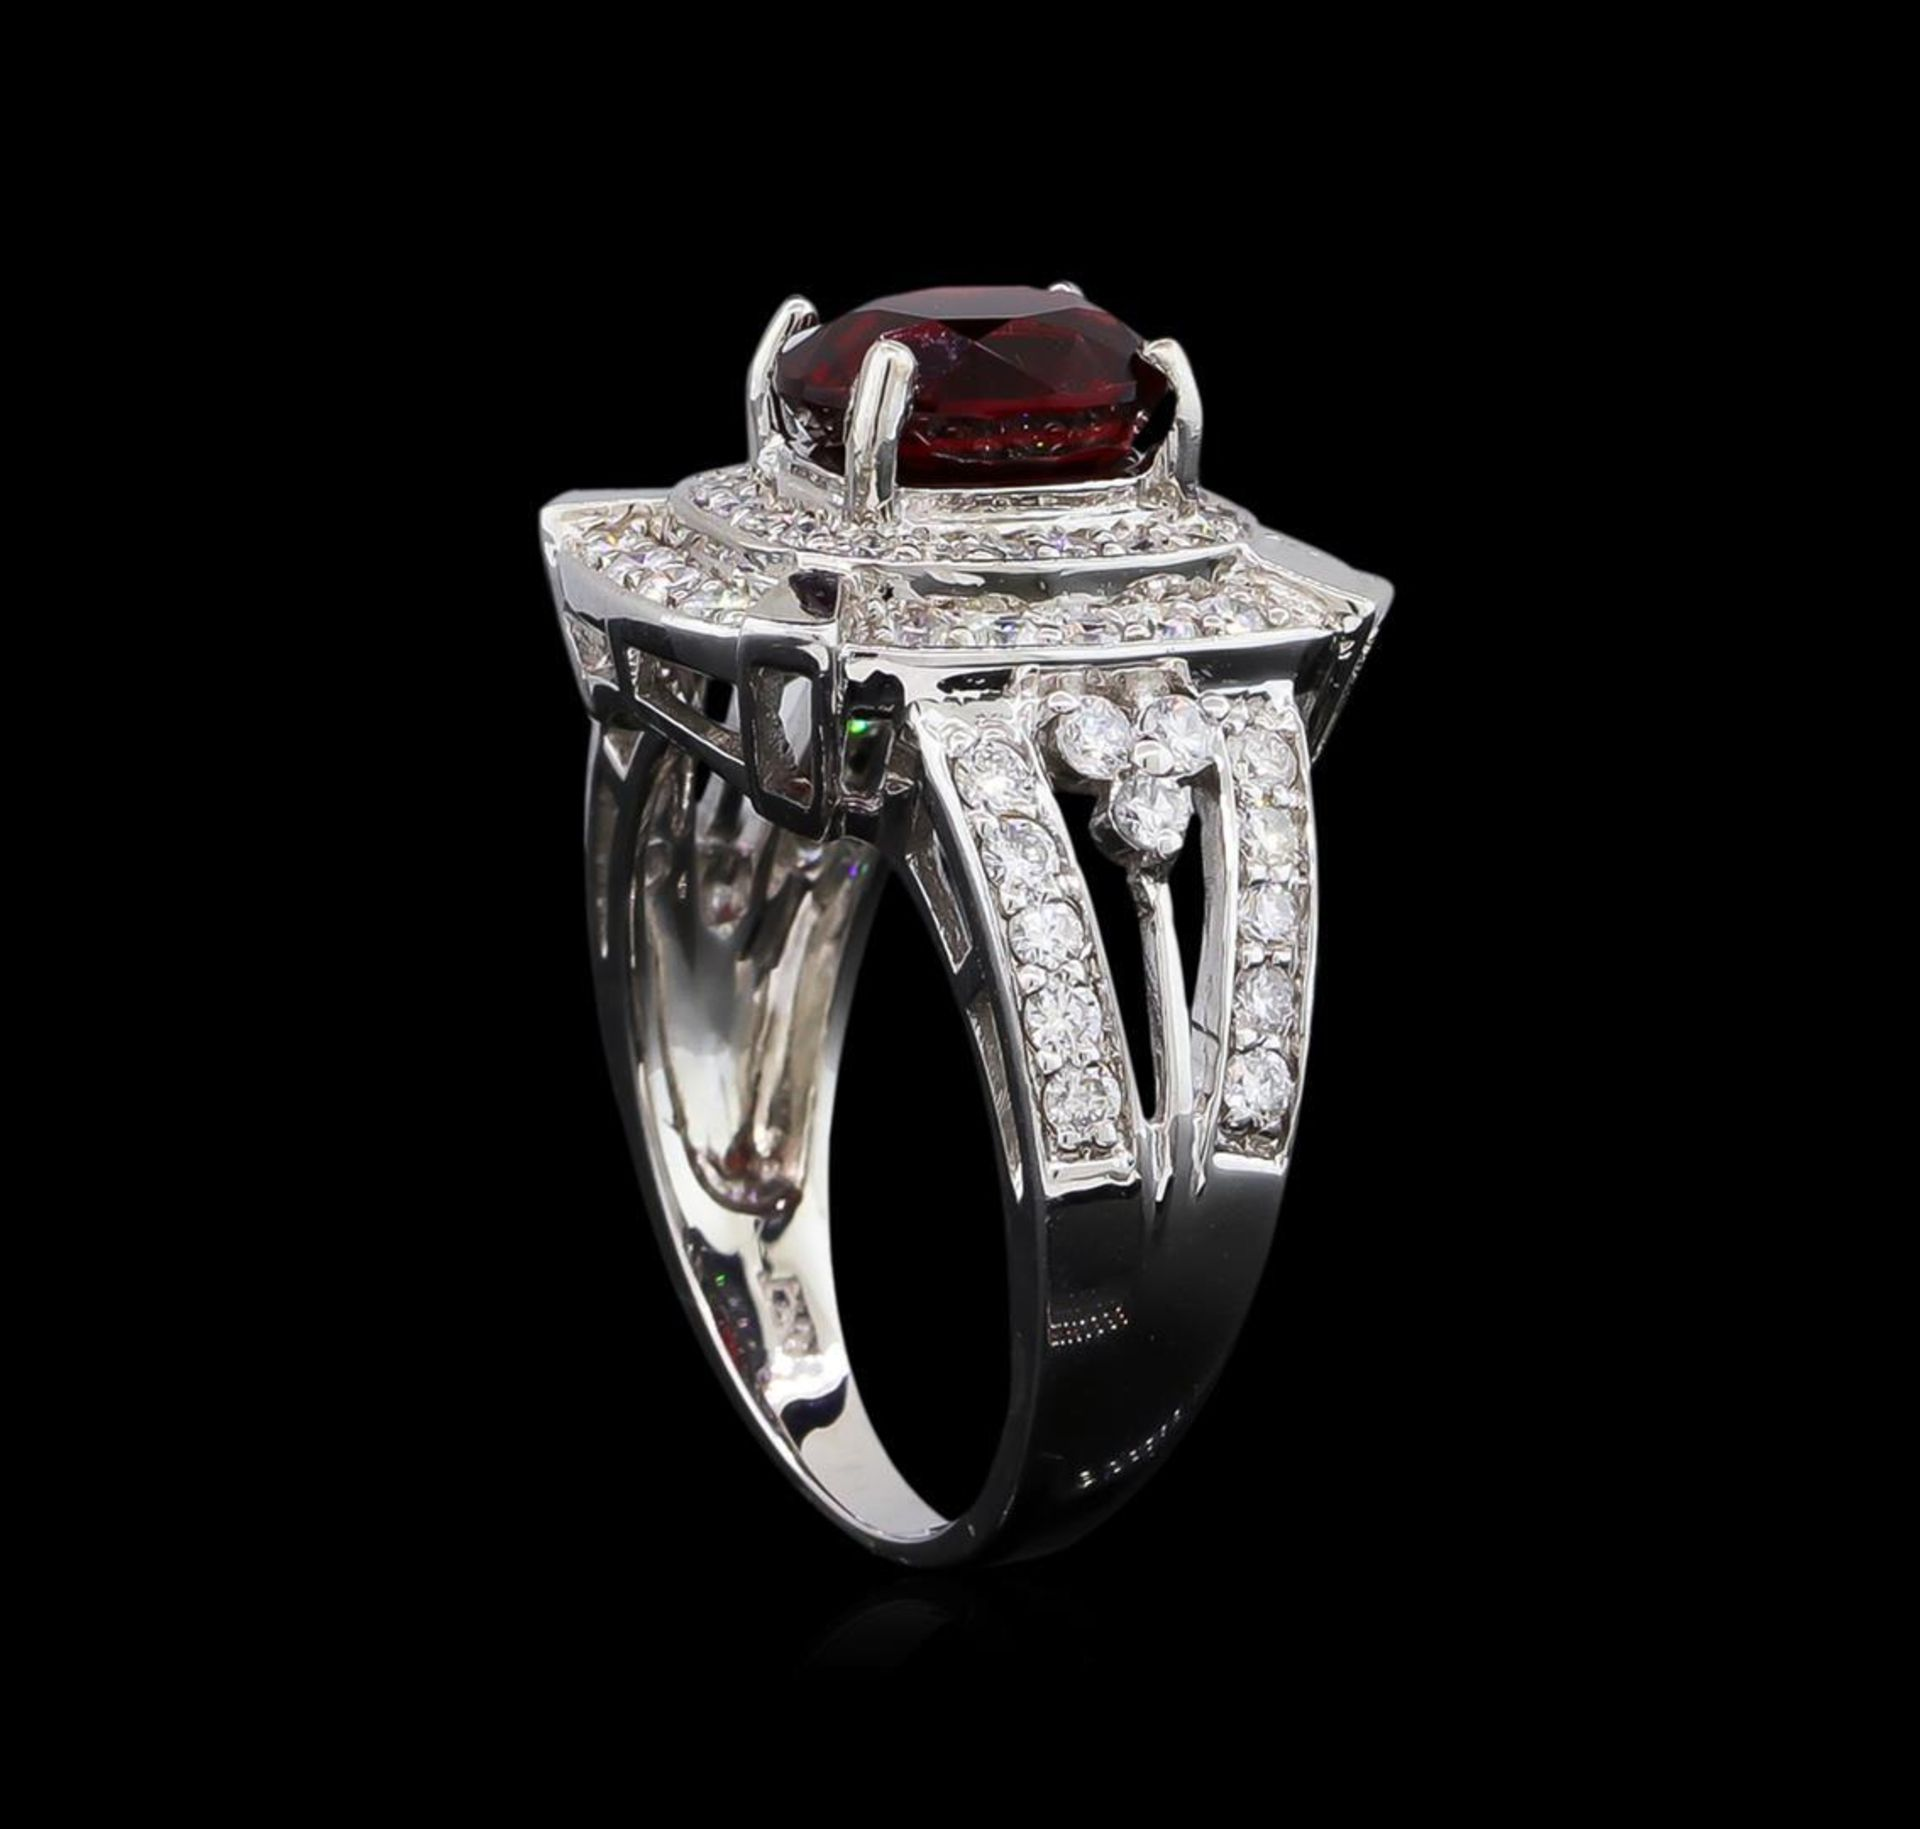 14KT White Gold 2.67 ctw Spinel and Diamond Ring - Image 4 of 5